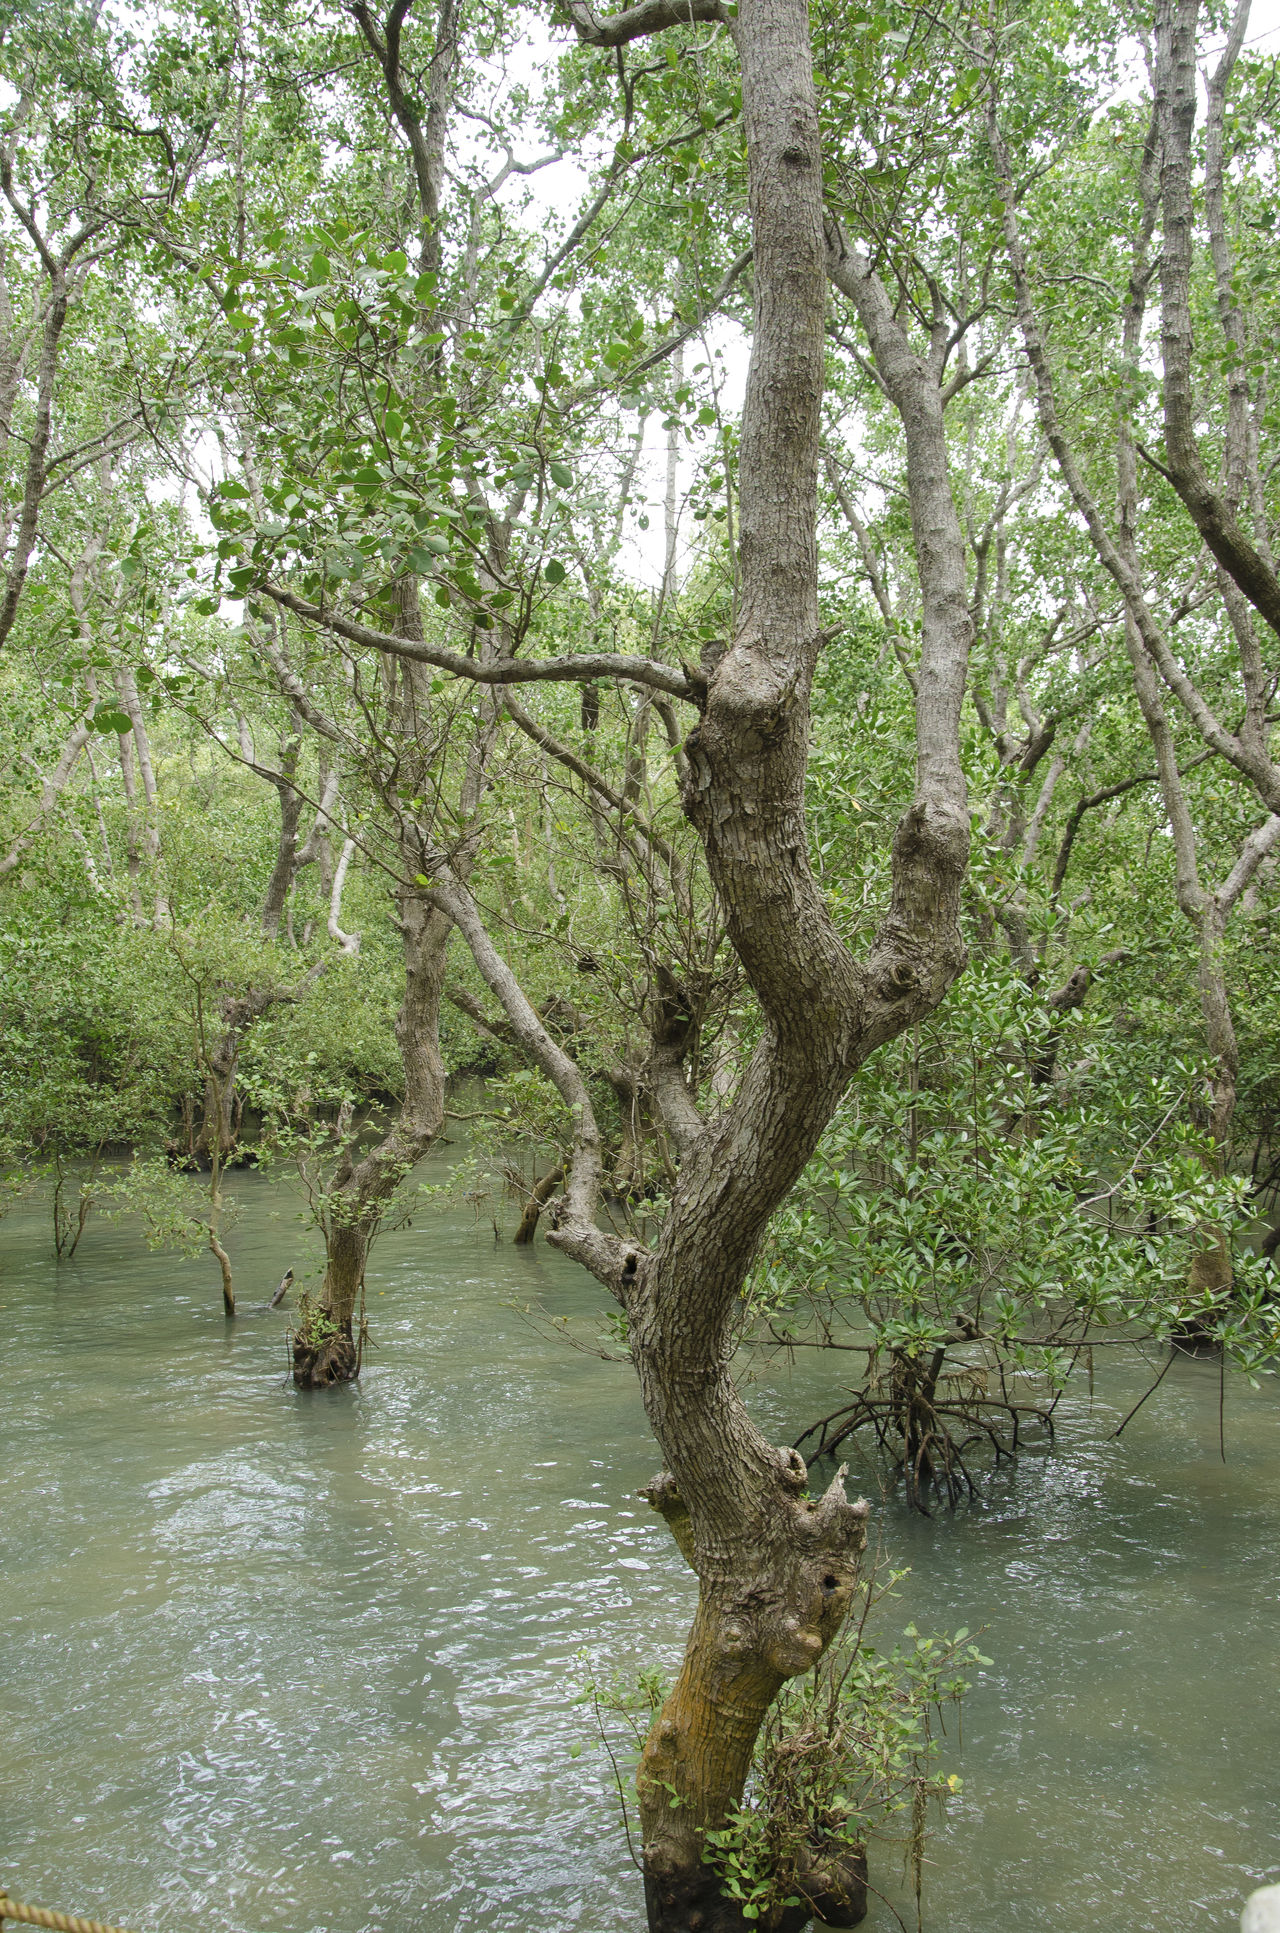 Beauty In Nature Branch Day Forest Growth Lake Mangrove Mangrove Forest Mangrove Swamp Mangroves Nature No People Outdoors Scenics Sky Tranquility Tree Tree Trunk Water